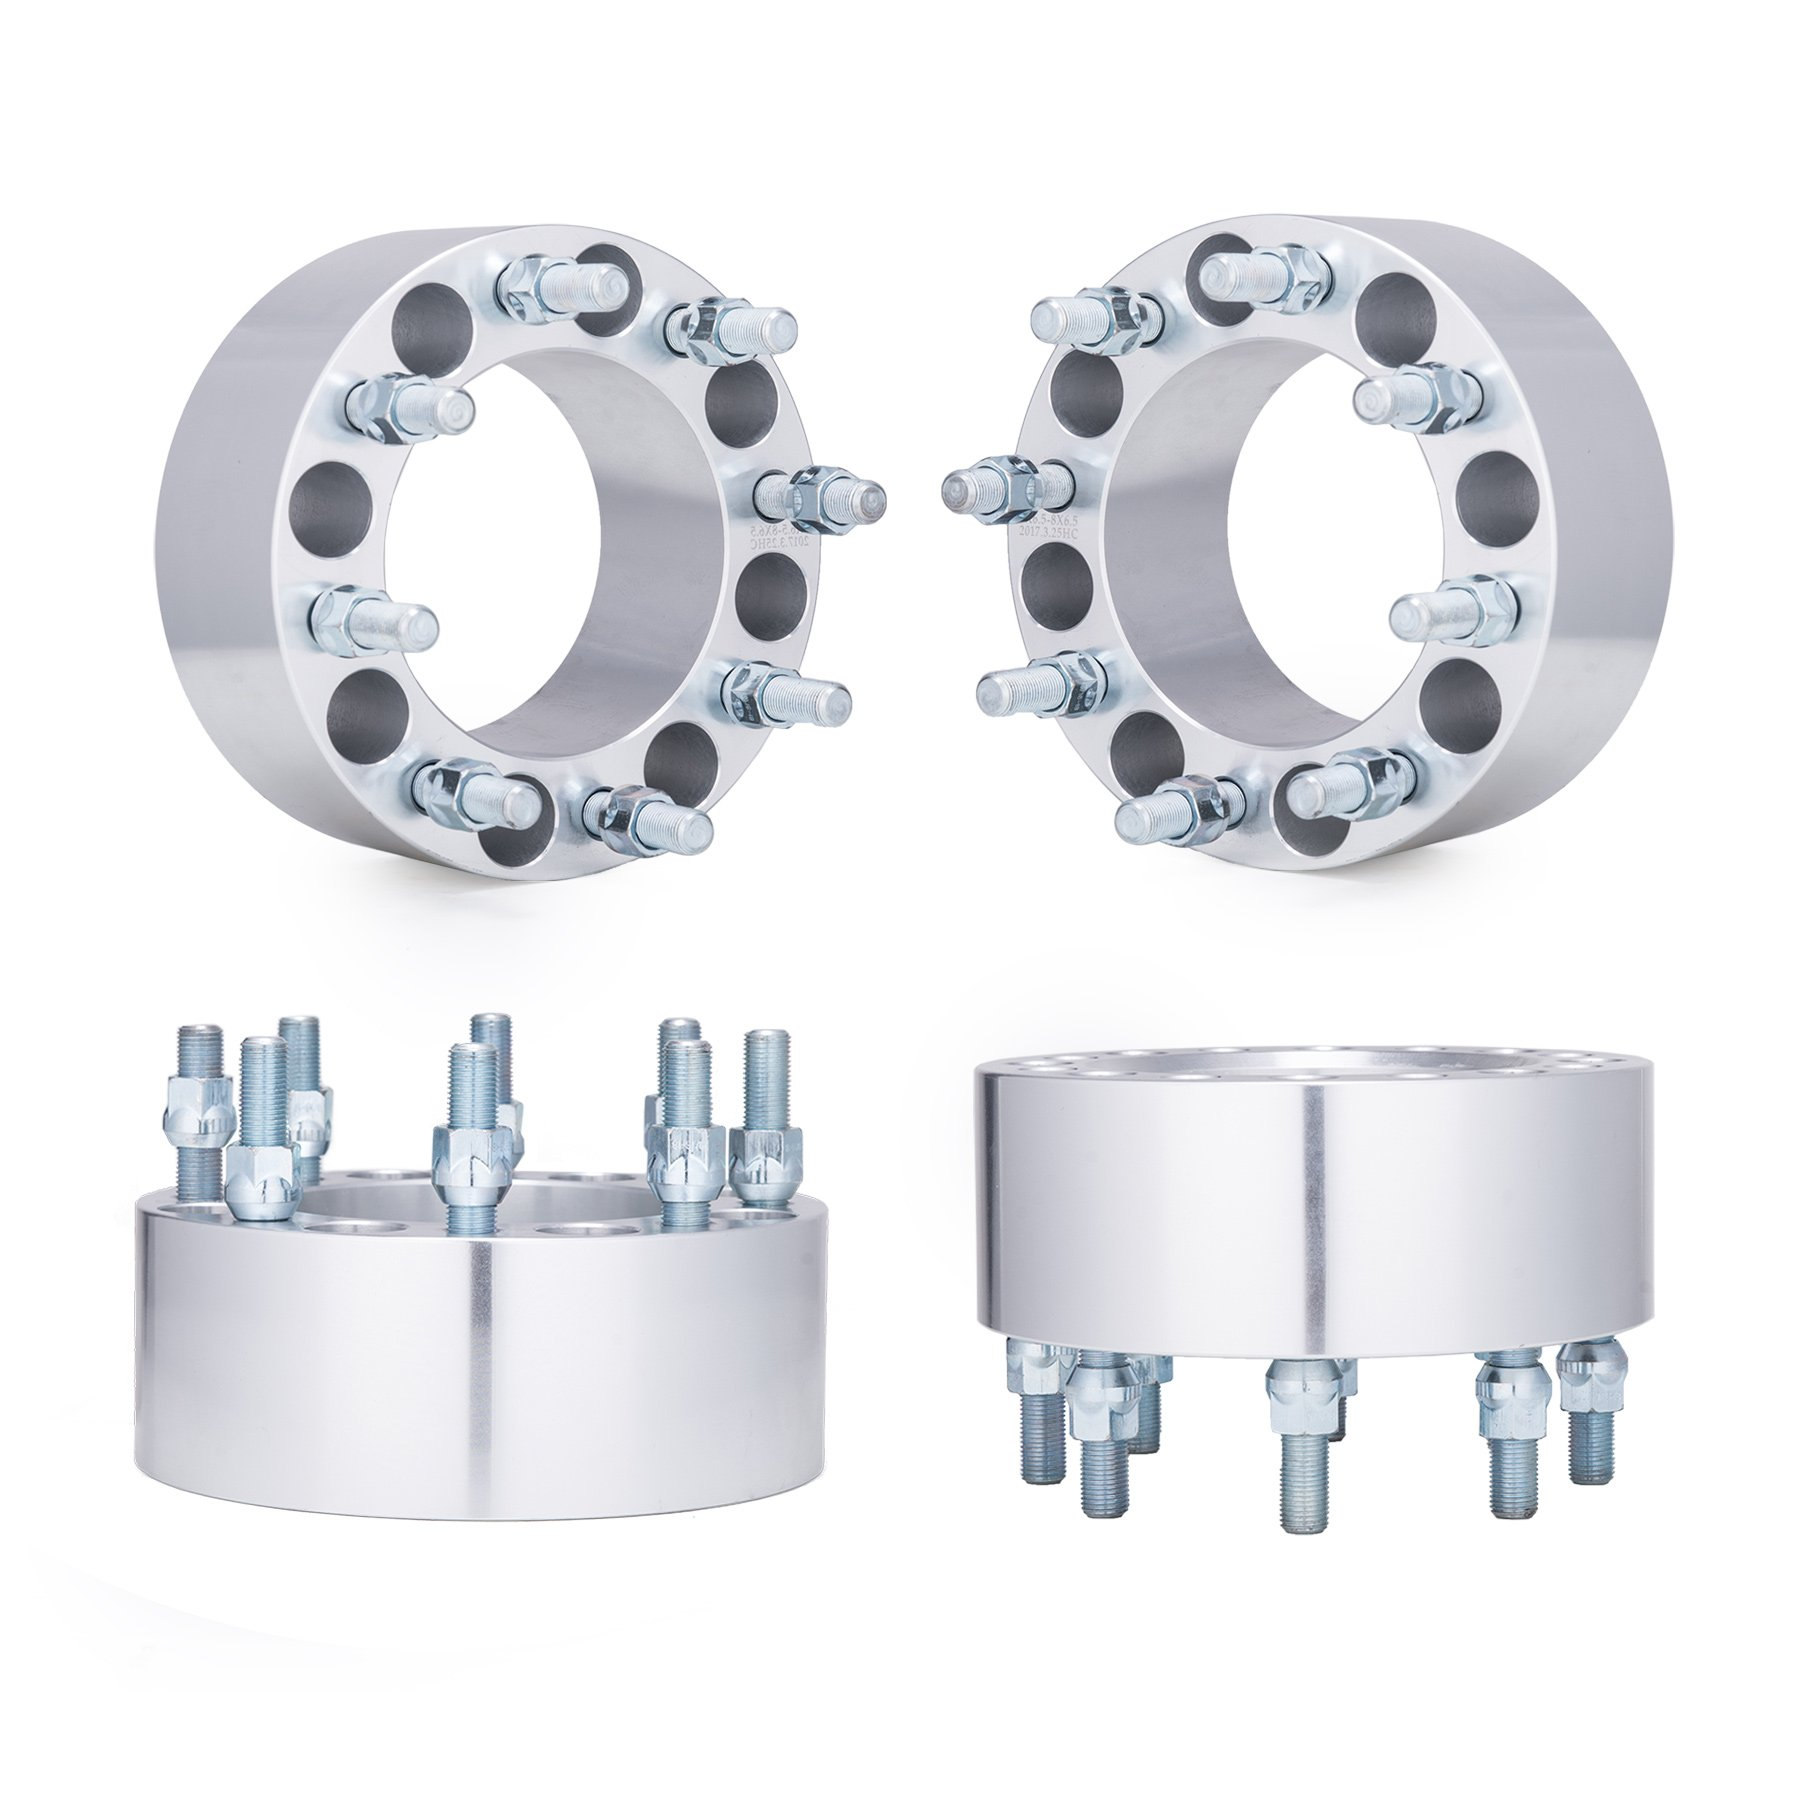 Orion Motor Tech 4pcs 3'' Wheel Spacers 8x6.5 with 9/16-18 Studs for 94-11 Dodge Ram 2500 3500, 88-98 Ford F250 F350, Ford Econoline 250 350 by OrionMotorTech (Image #7)